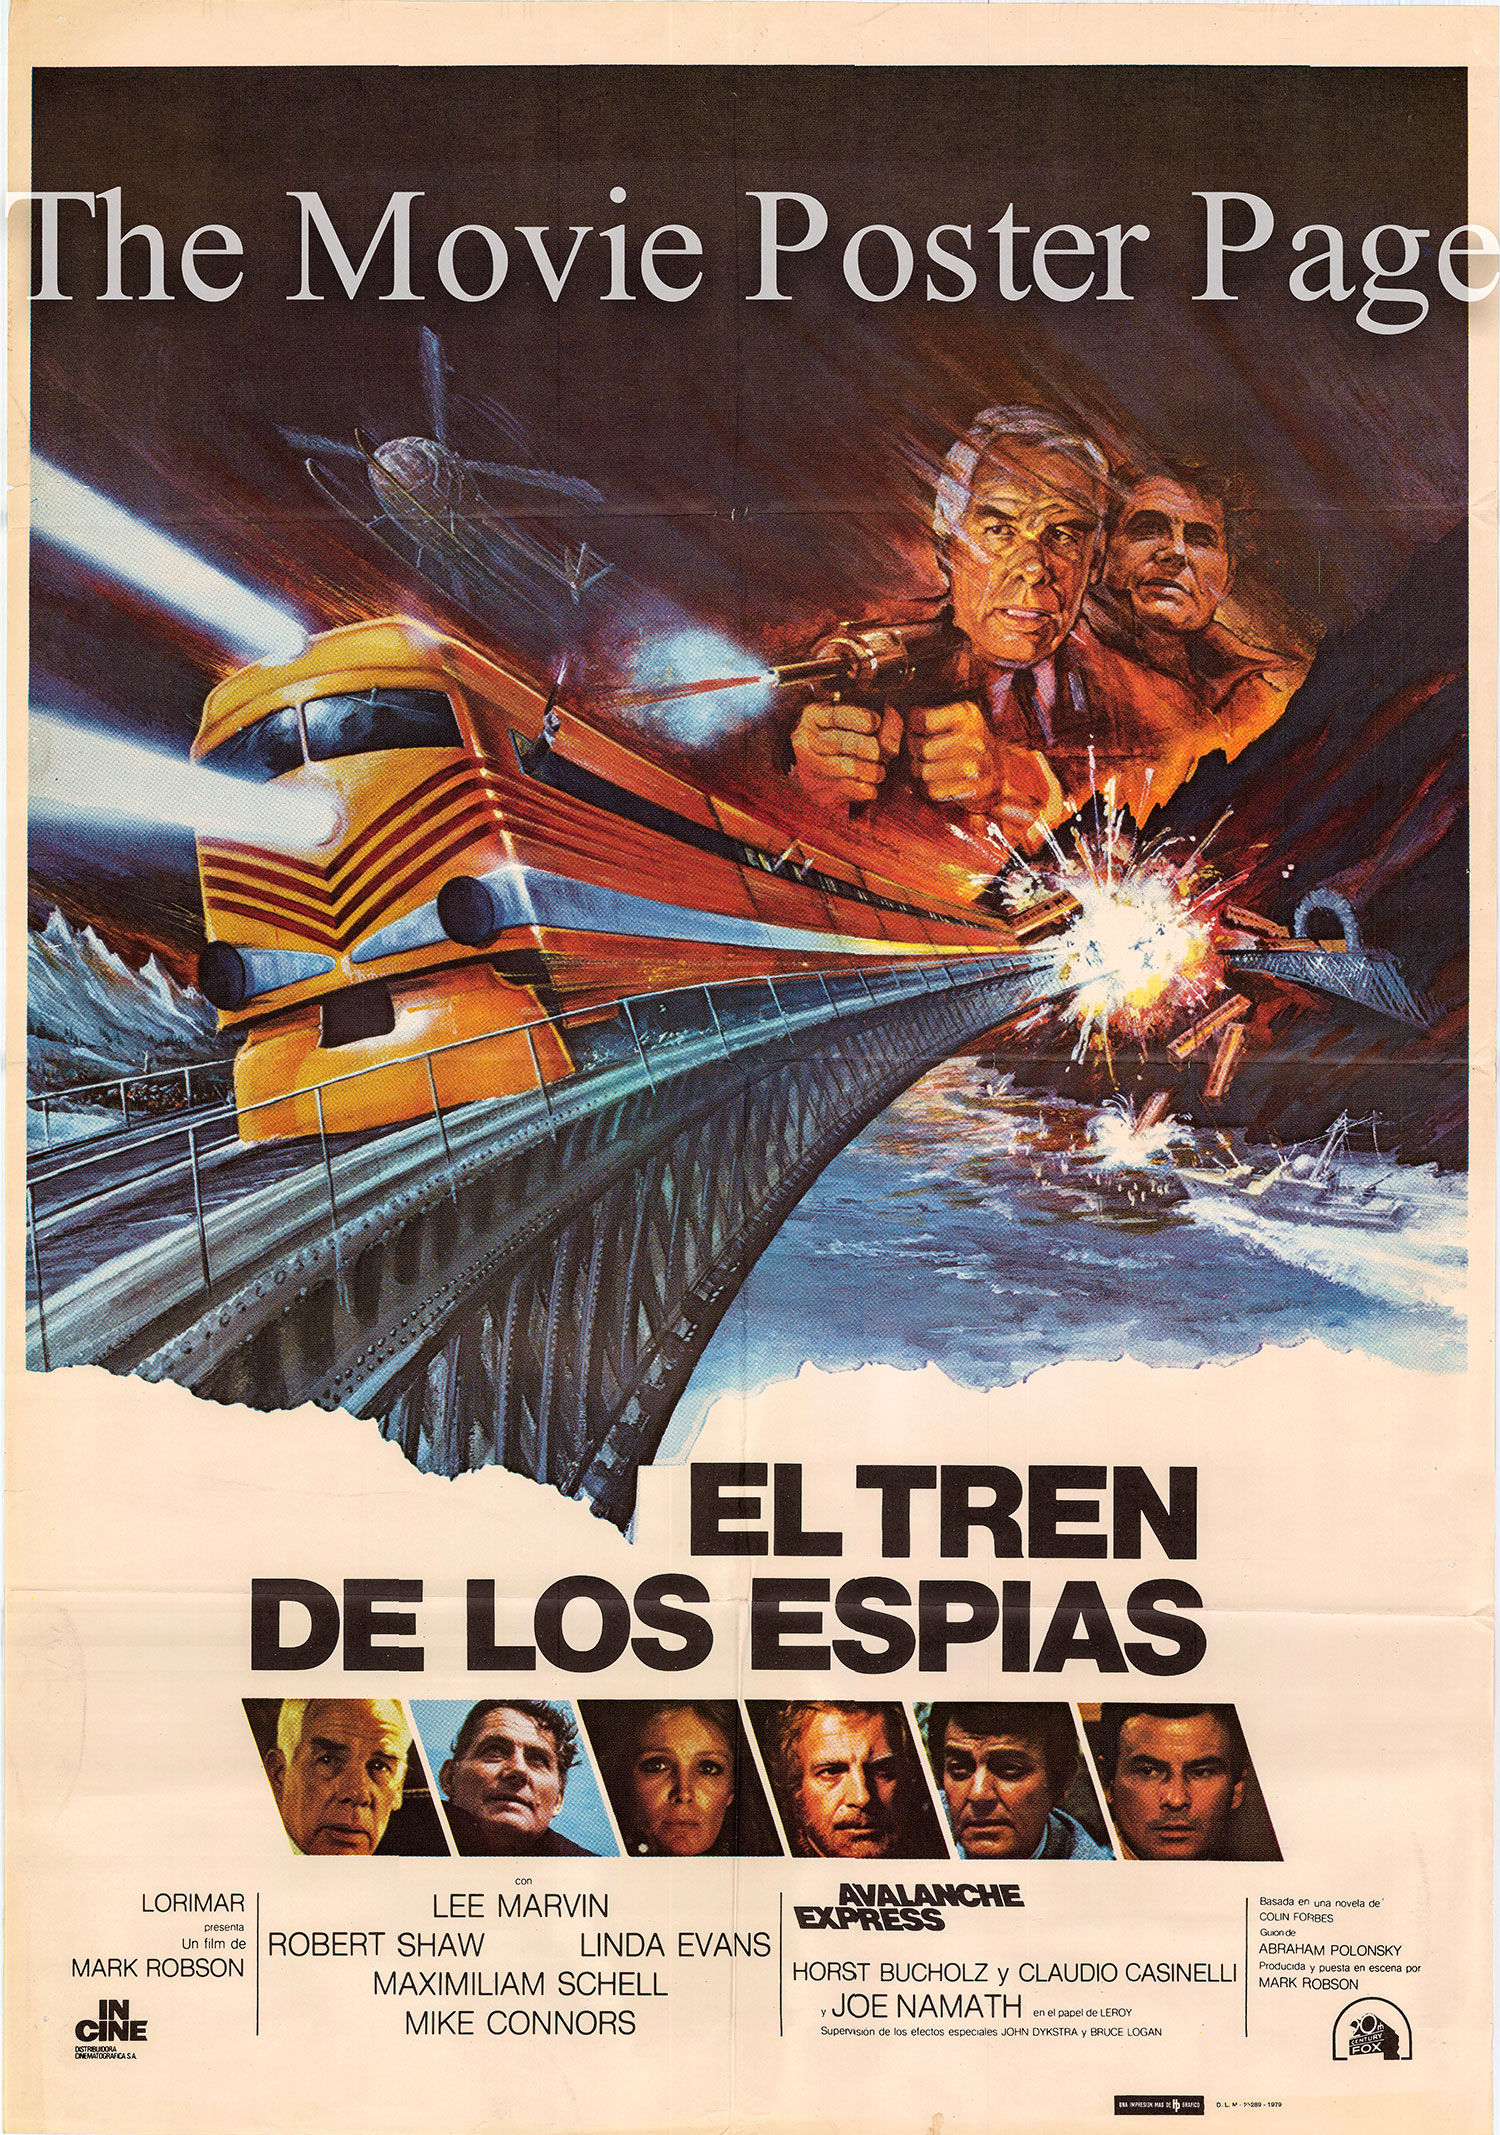 Pictured is a Spanish one-sheet poster for the 1979 Mark Robson film Avalanche Express starring Lee Marvin.